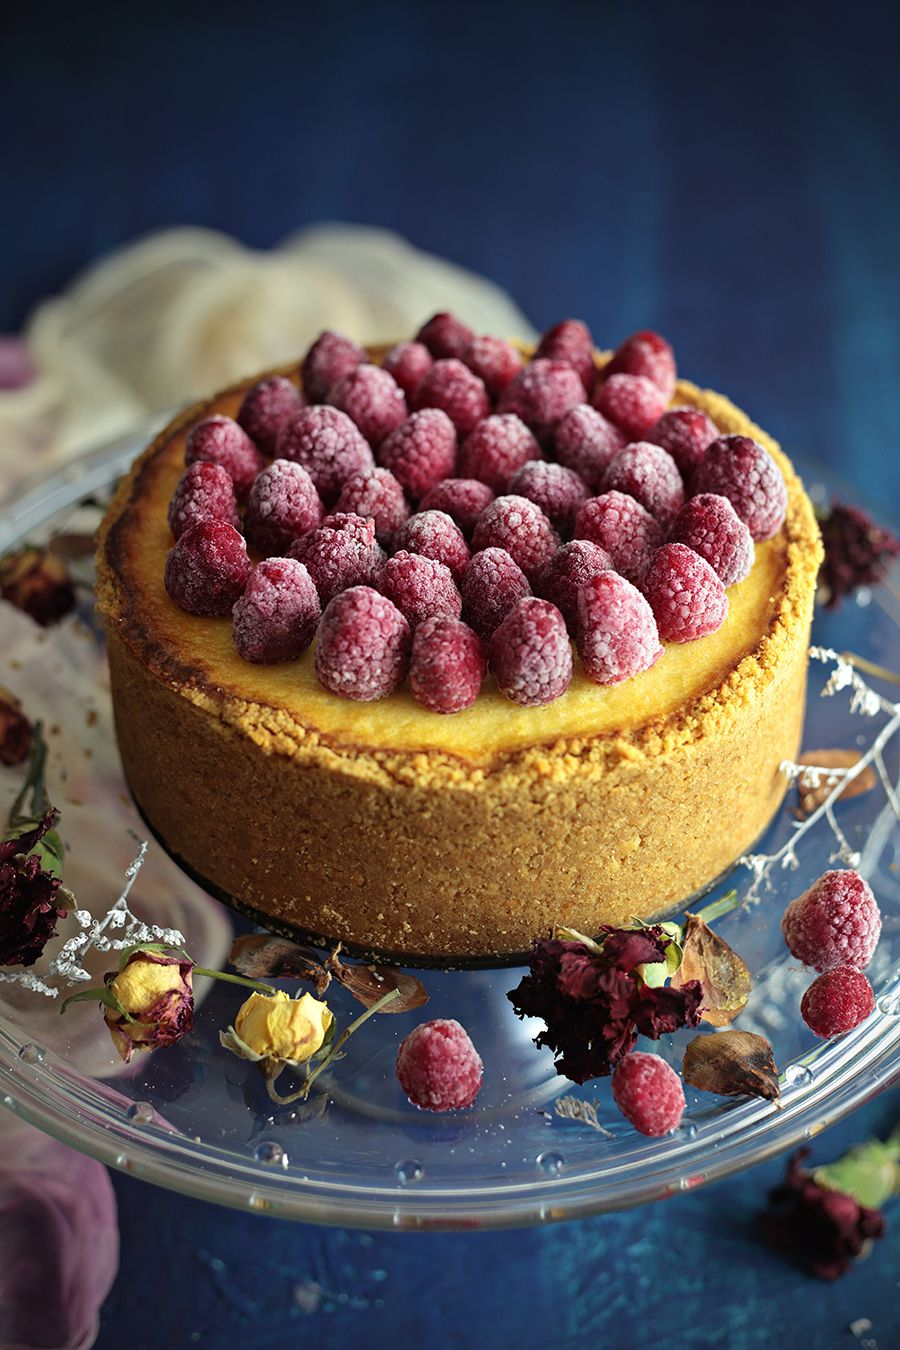 Baked Raspberry Cheesecake And One Of My Post Processing Secrets